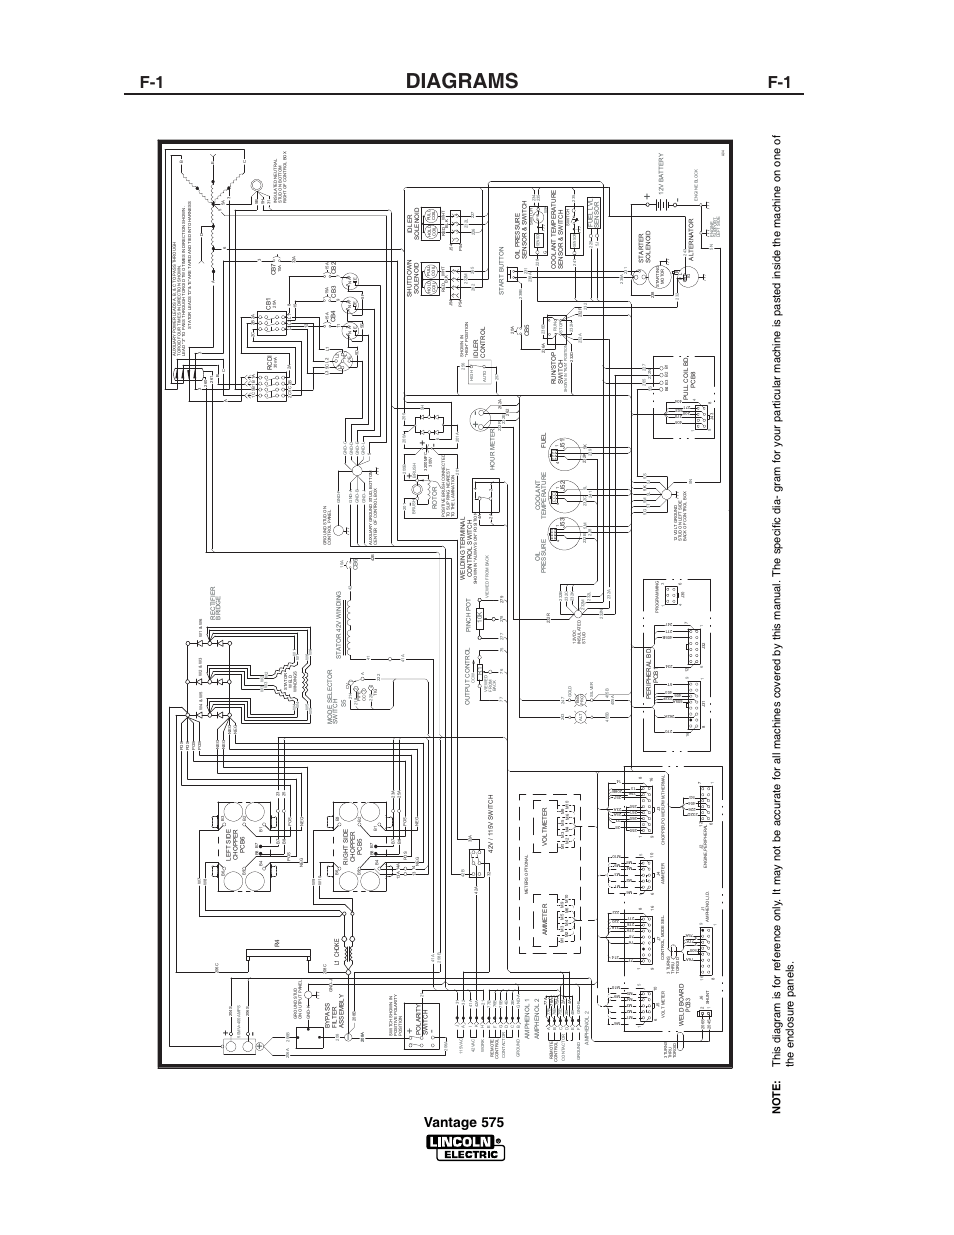 medium resolution of diagrams vantage 575 g4176 lincoln electric vantage 575 user manual page 36 54